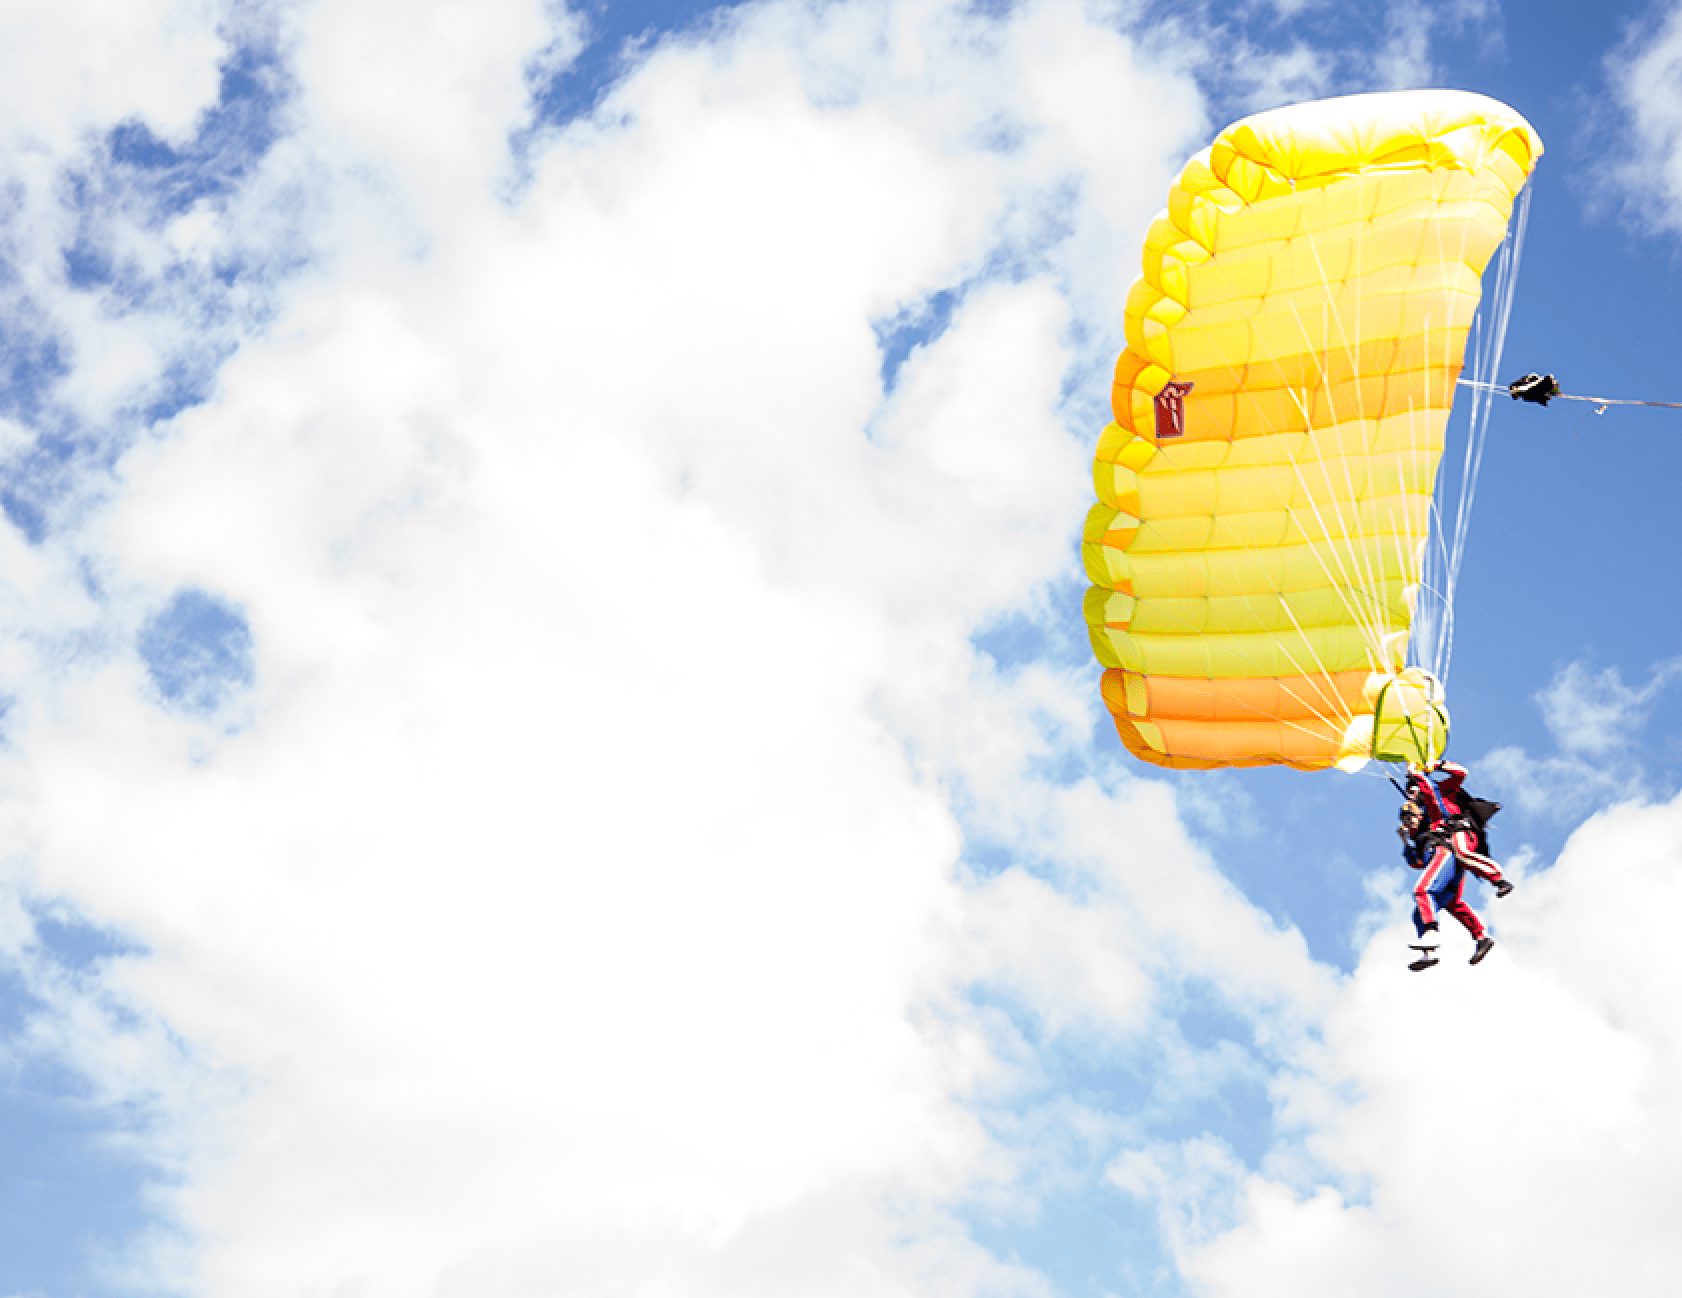 Day Trips and Travel Skydiving Malone Parachute Club Vermont by DoNorthMagazine